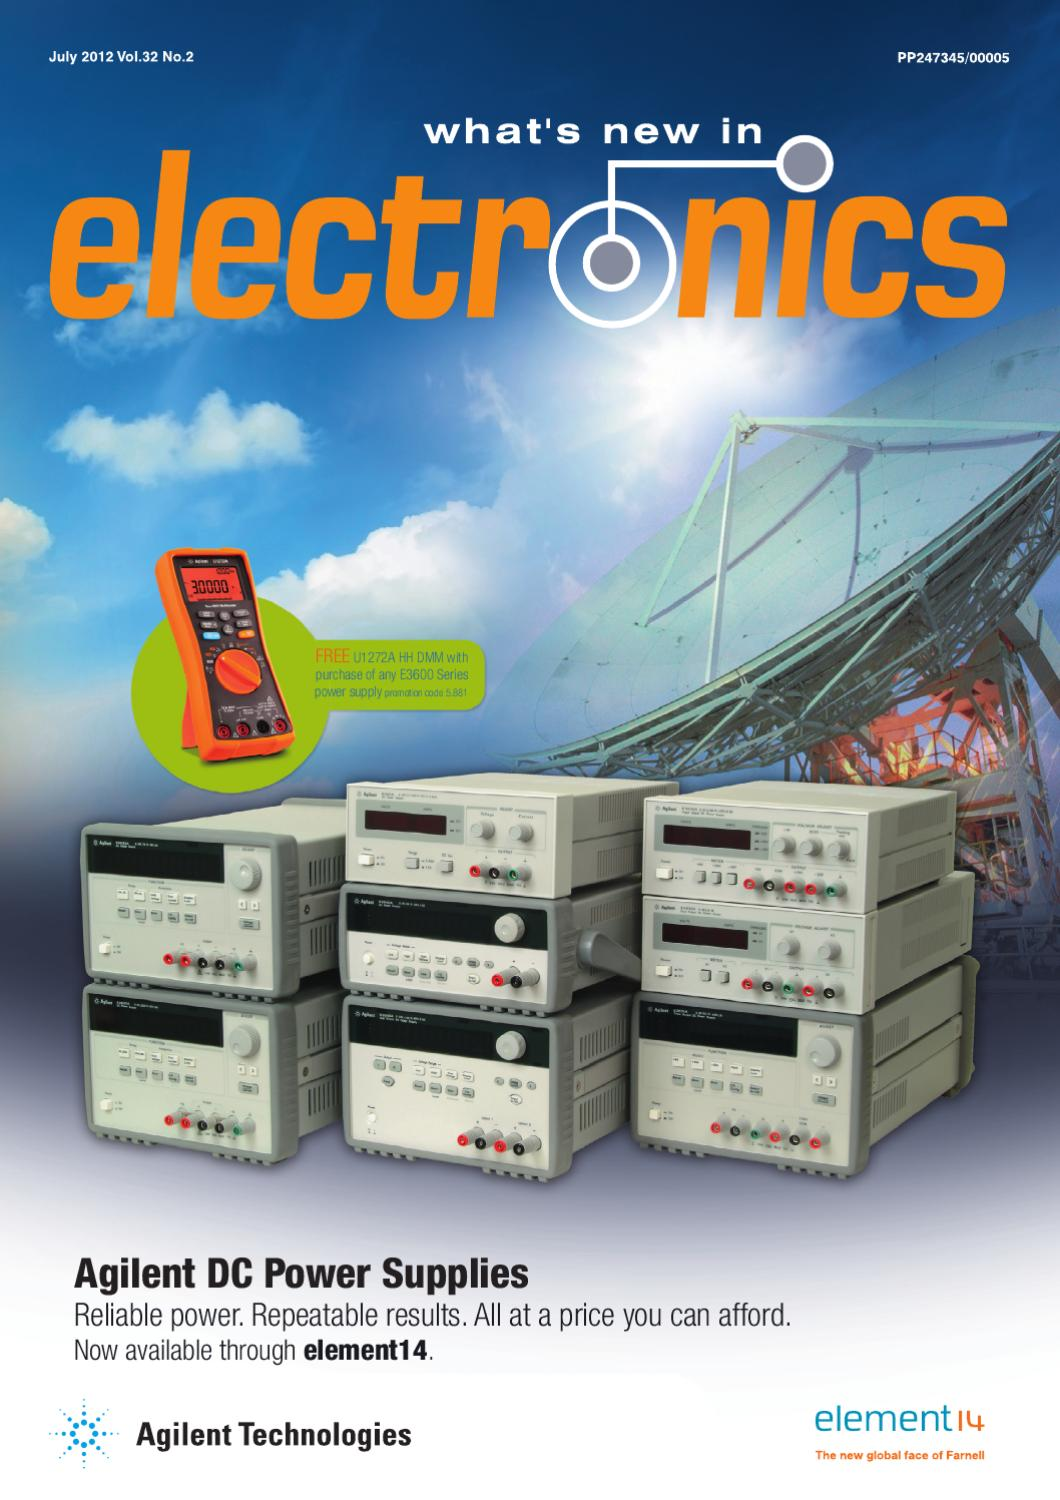 Whats New In Electronics Jul 2012 By Westwick Farrow Media Issuu Ground Fault Circuit Interrupter Outlet Price Usd 1000 Min